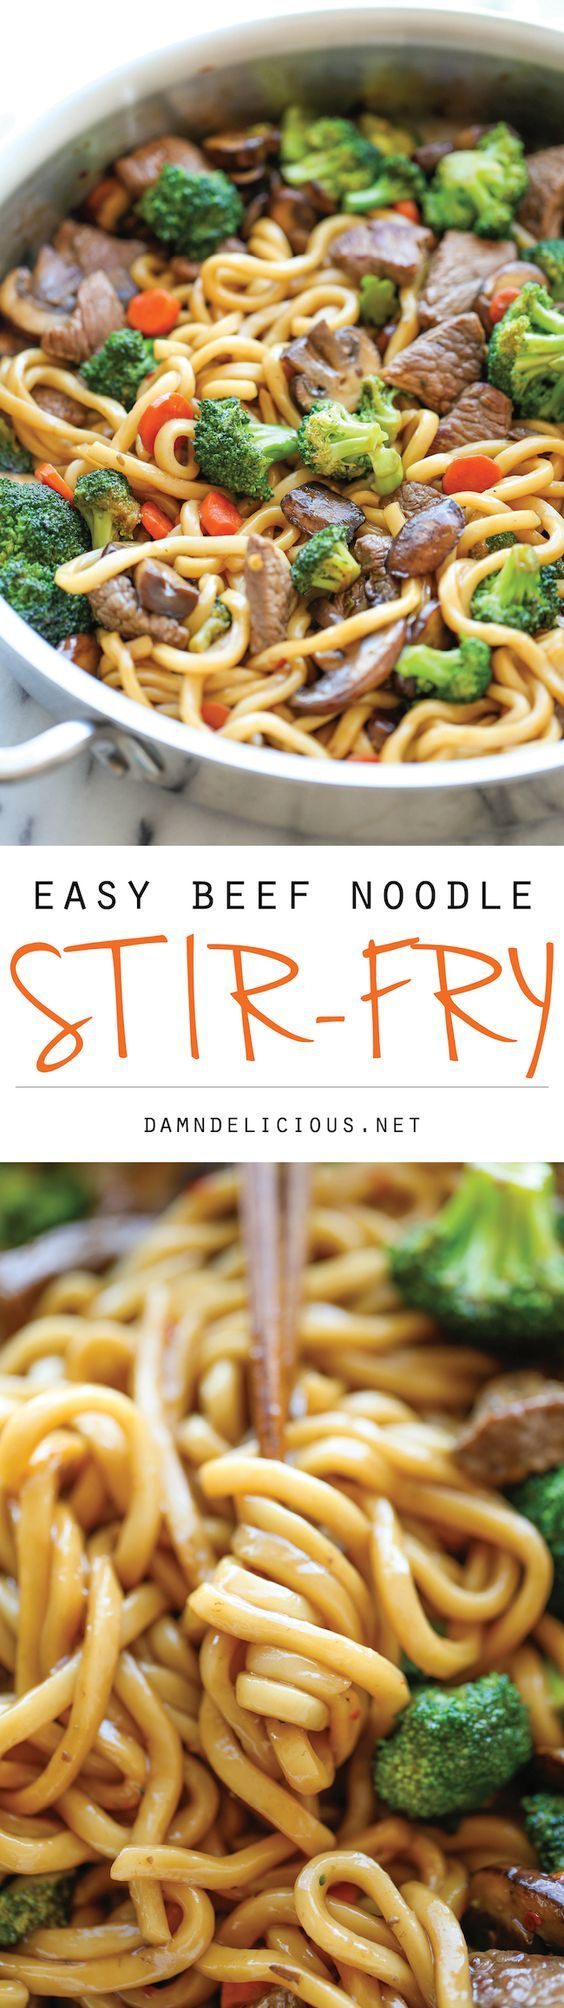 Beef Noodle Stir Fry - The easiest stir fry ever! And you can add in your favorite veggies, making this to be the perfect clean-out-the-fridge type meal!: